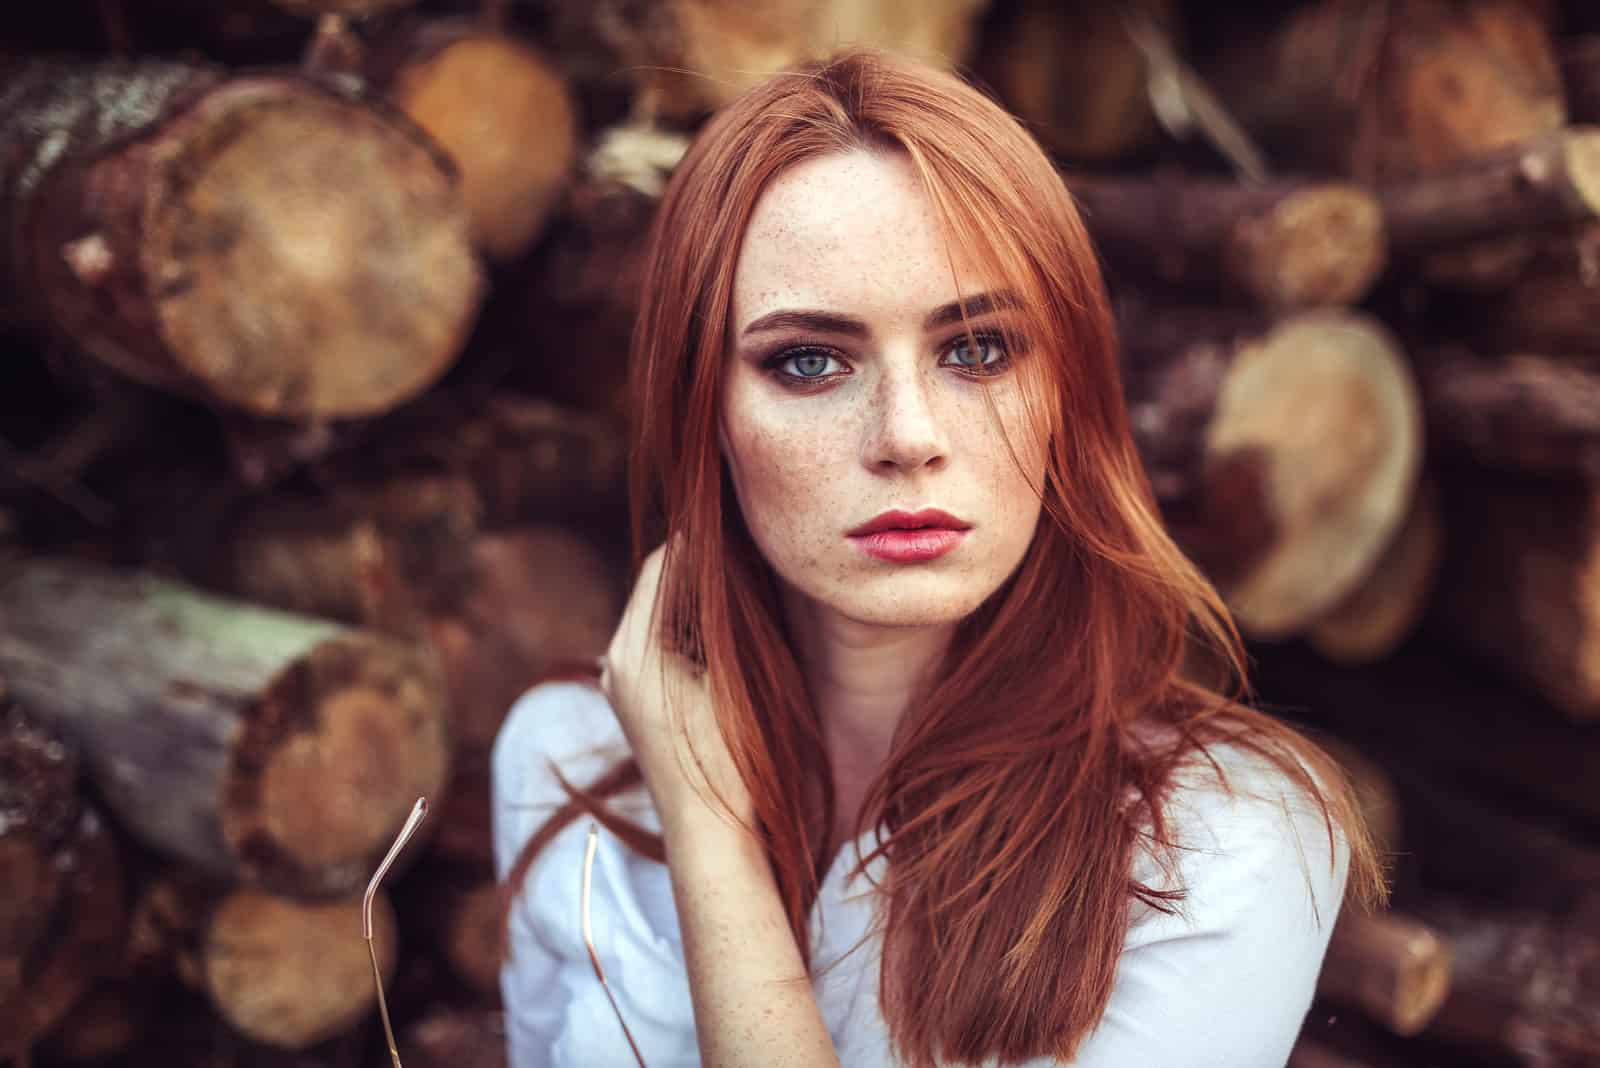 redhead young girl with blue eyes